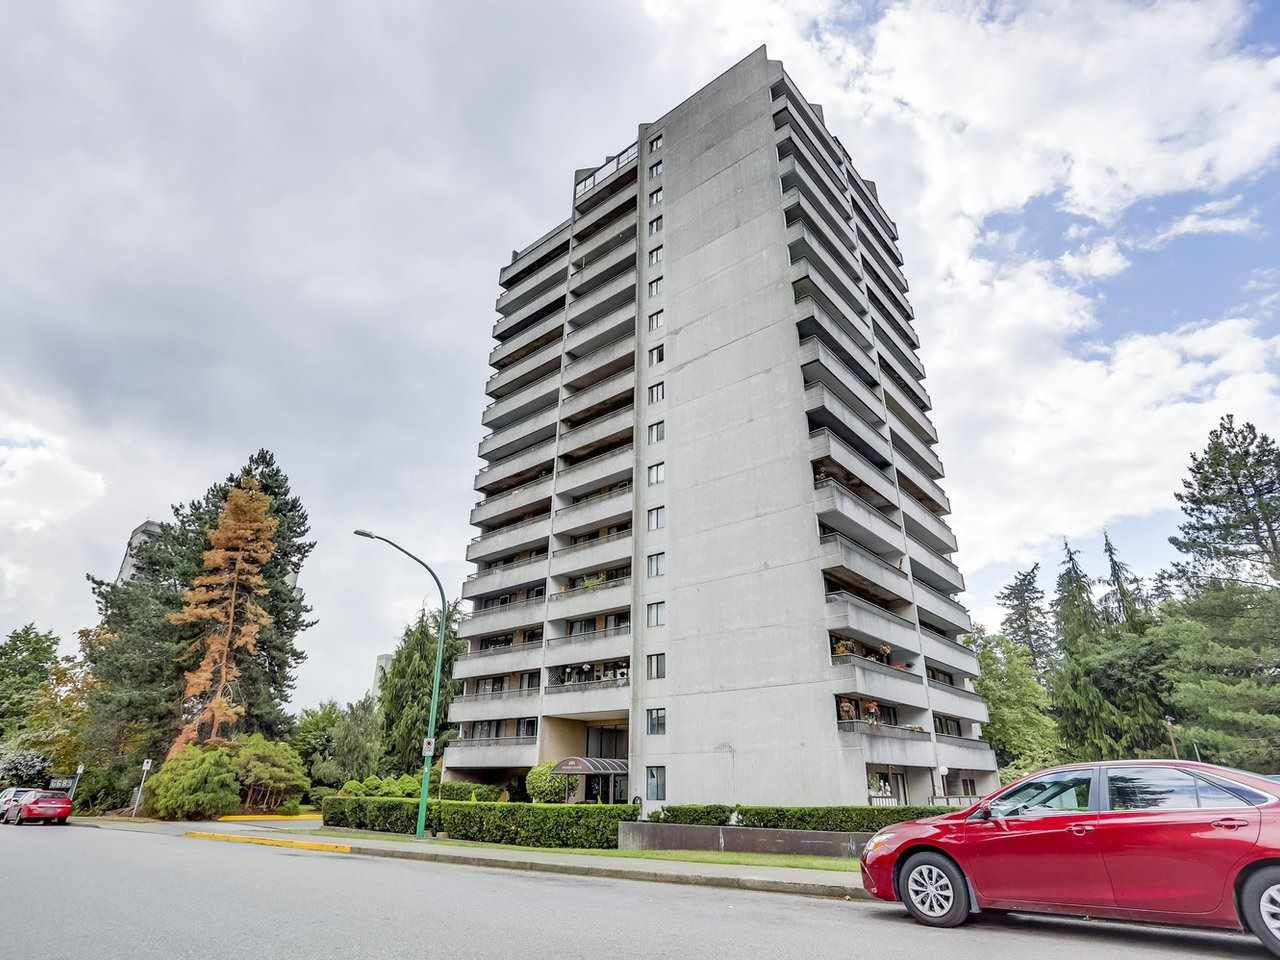 """Main Photo: 1004 6595 WILLINGDON Avenue in Burnaby: Metrotown Condo for sale in """"HUNTLY MANOR"""" (Burnaby South)  : MLS®# R2306640"""